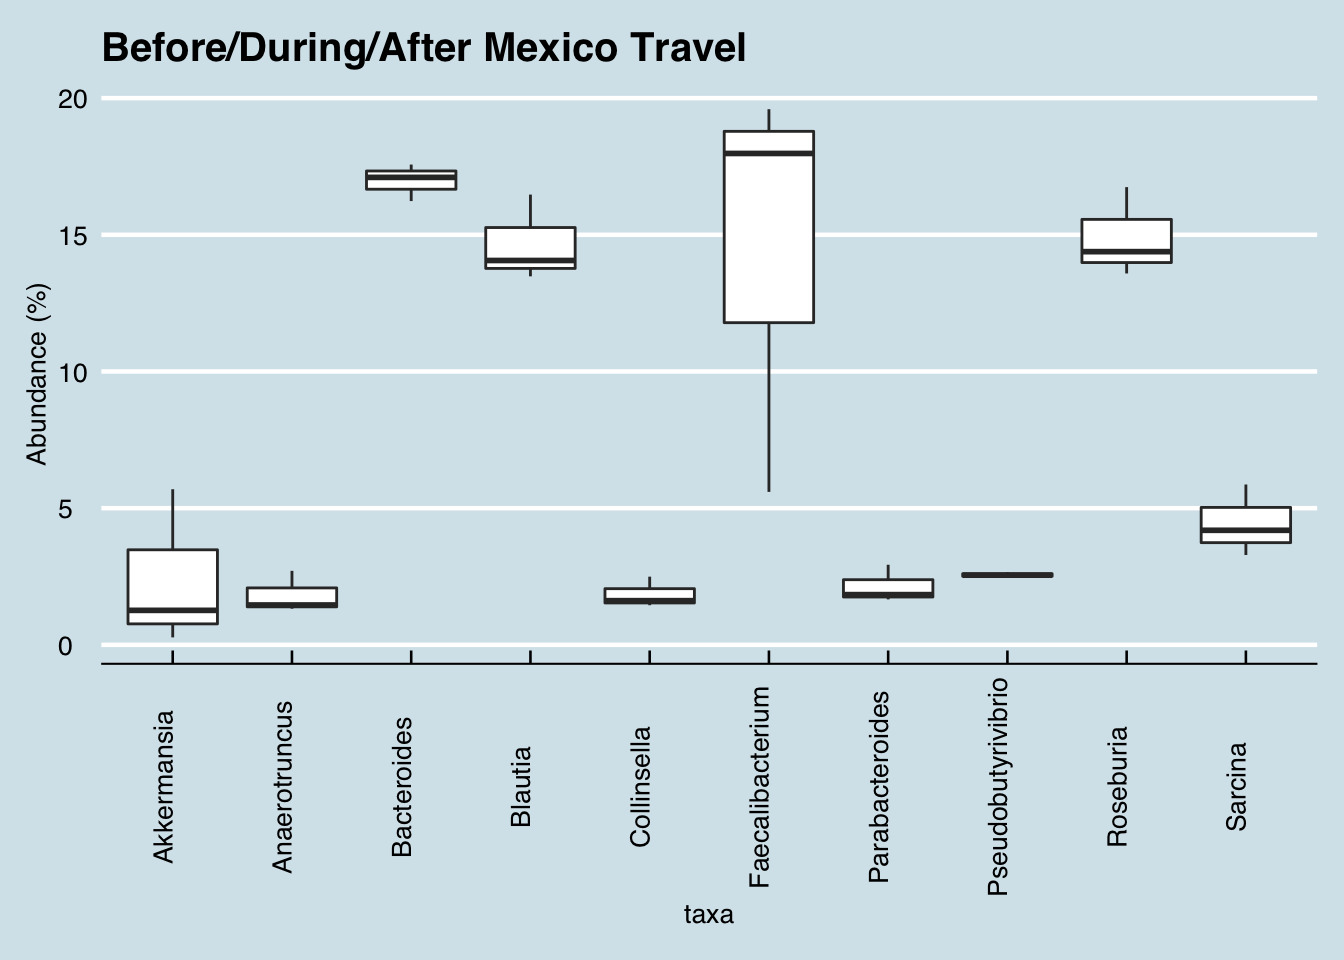 Variability of key genus abundance before/during/after a trip to Mexico.